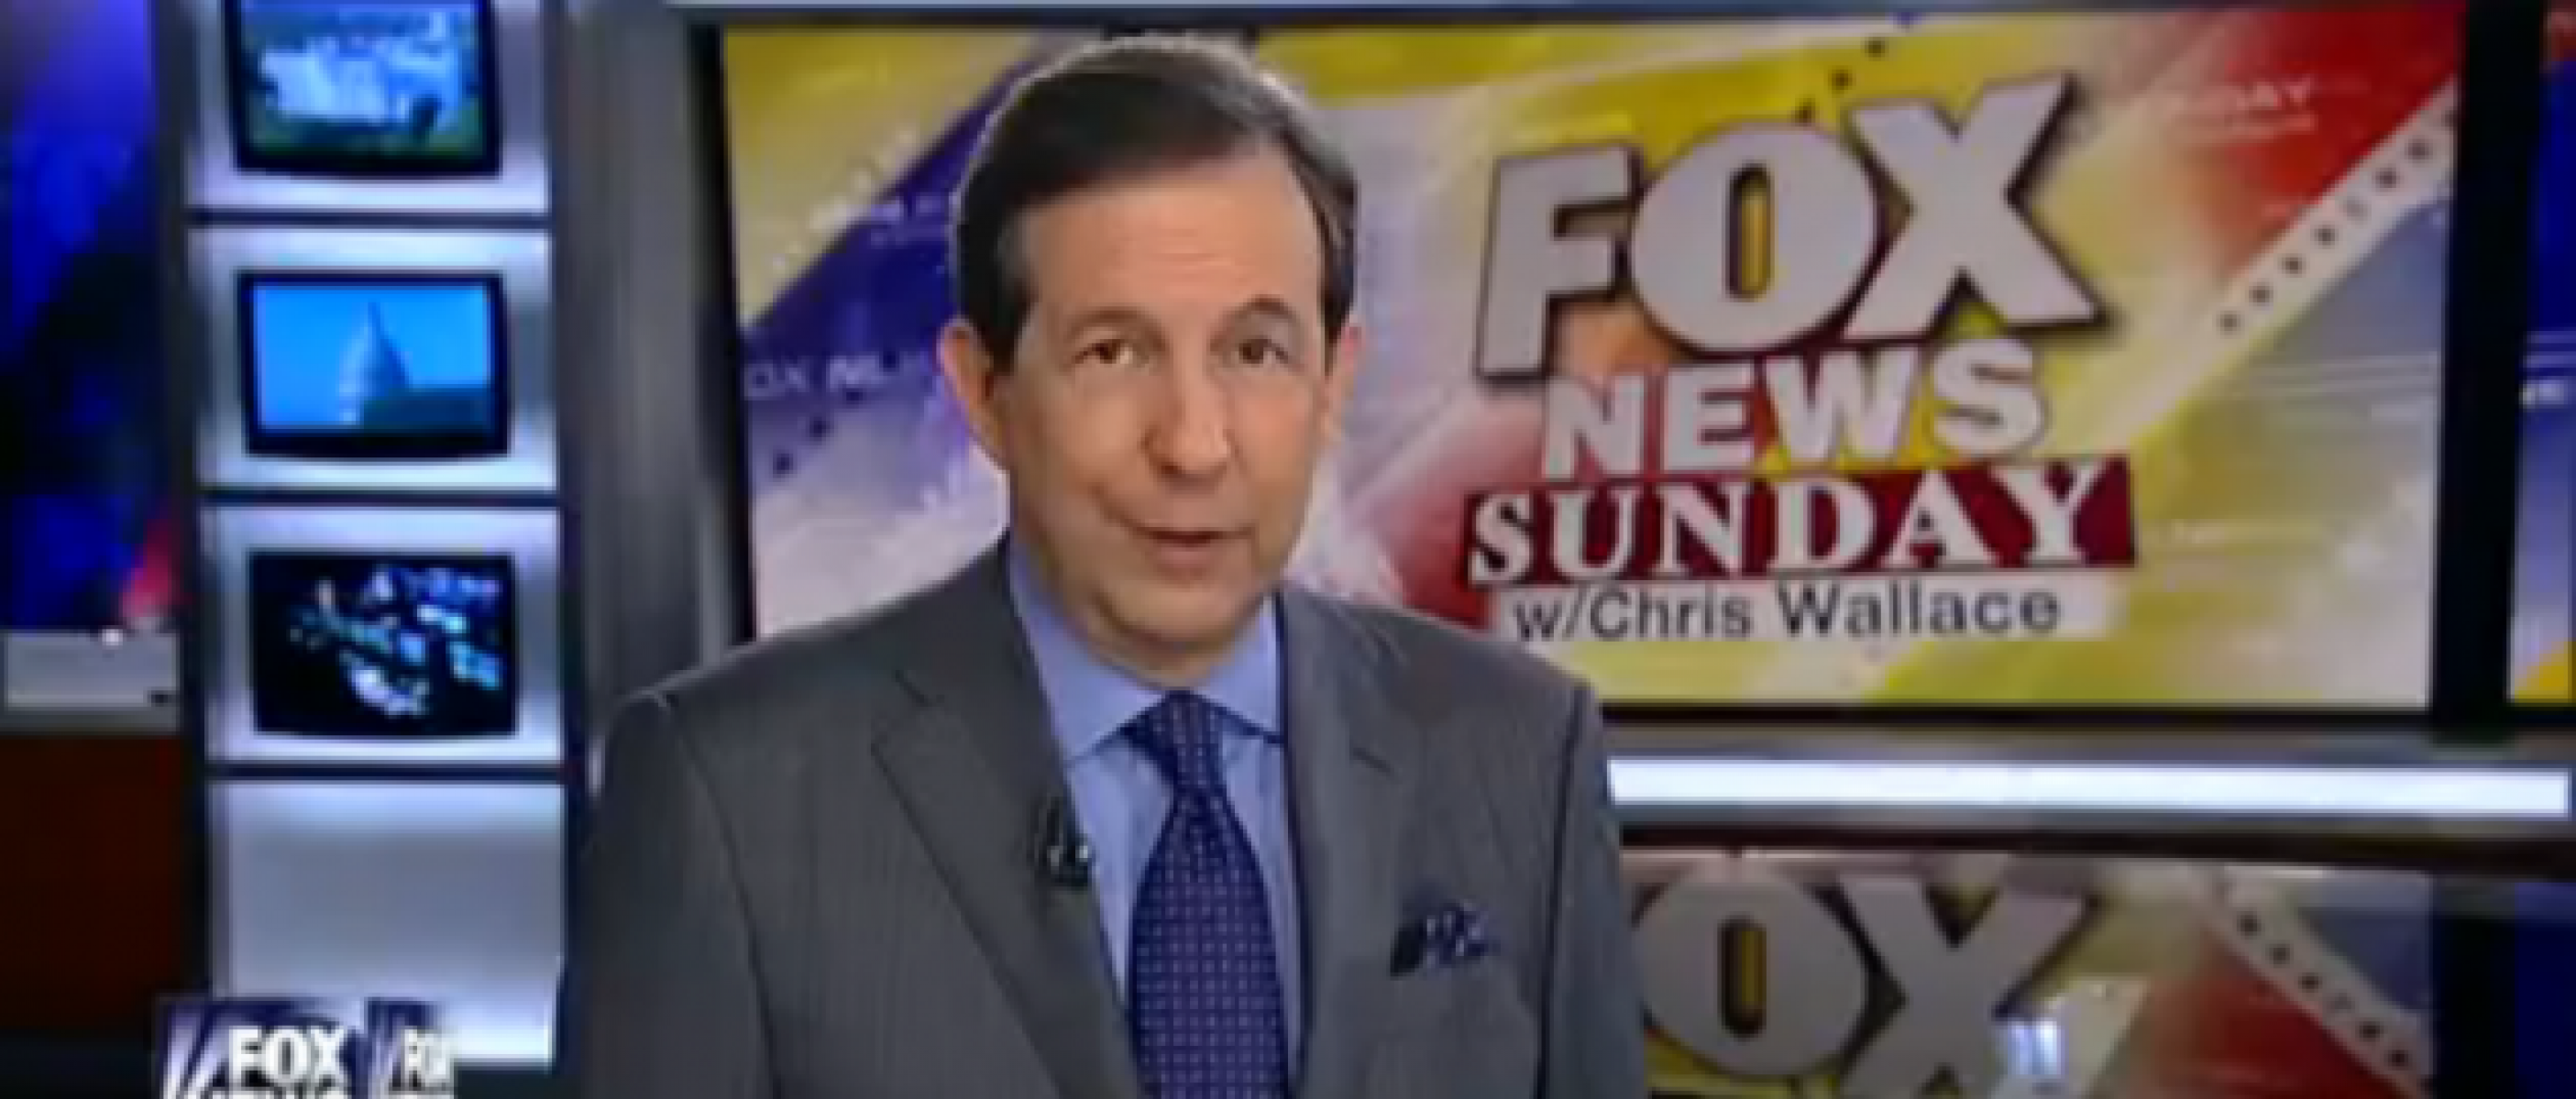 Chris Wallace Confronts Dem Congressman On Obama's Executive Actions: 'Is He Rewriting The Law?' [VIDEO]